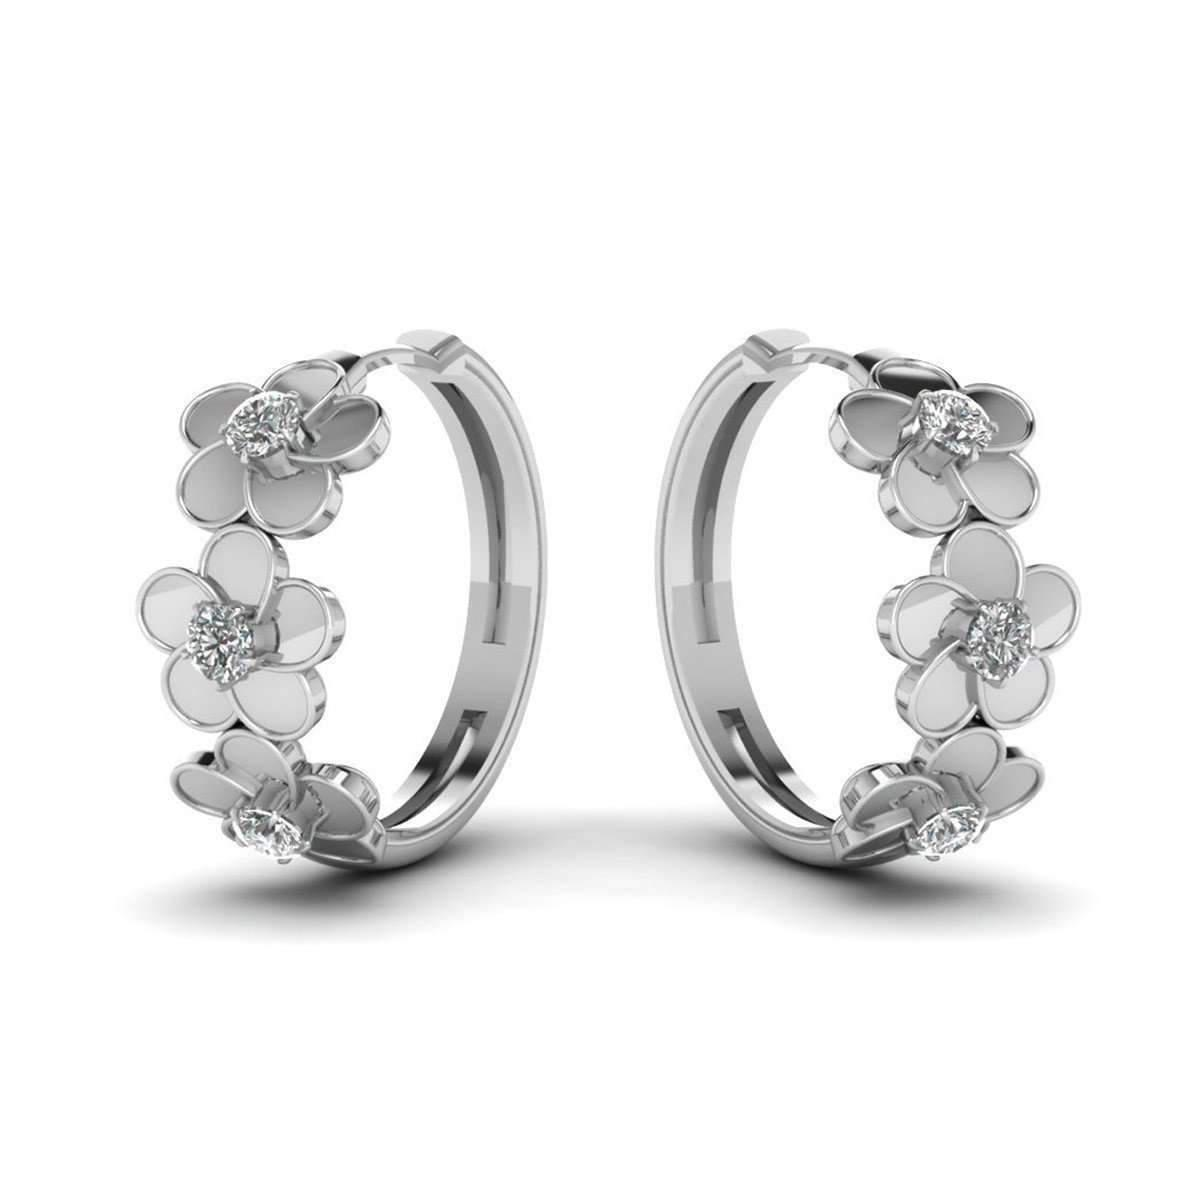 Diamoire Jewels Stud Blossom Delight Earrings in 10Kt White Gold XBcQ8a